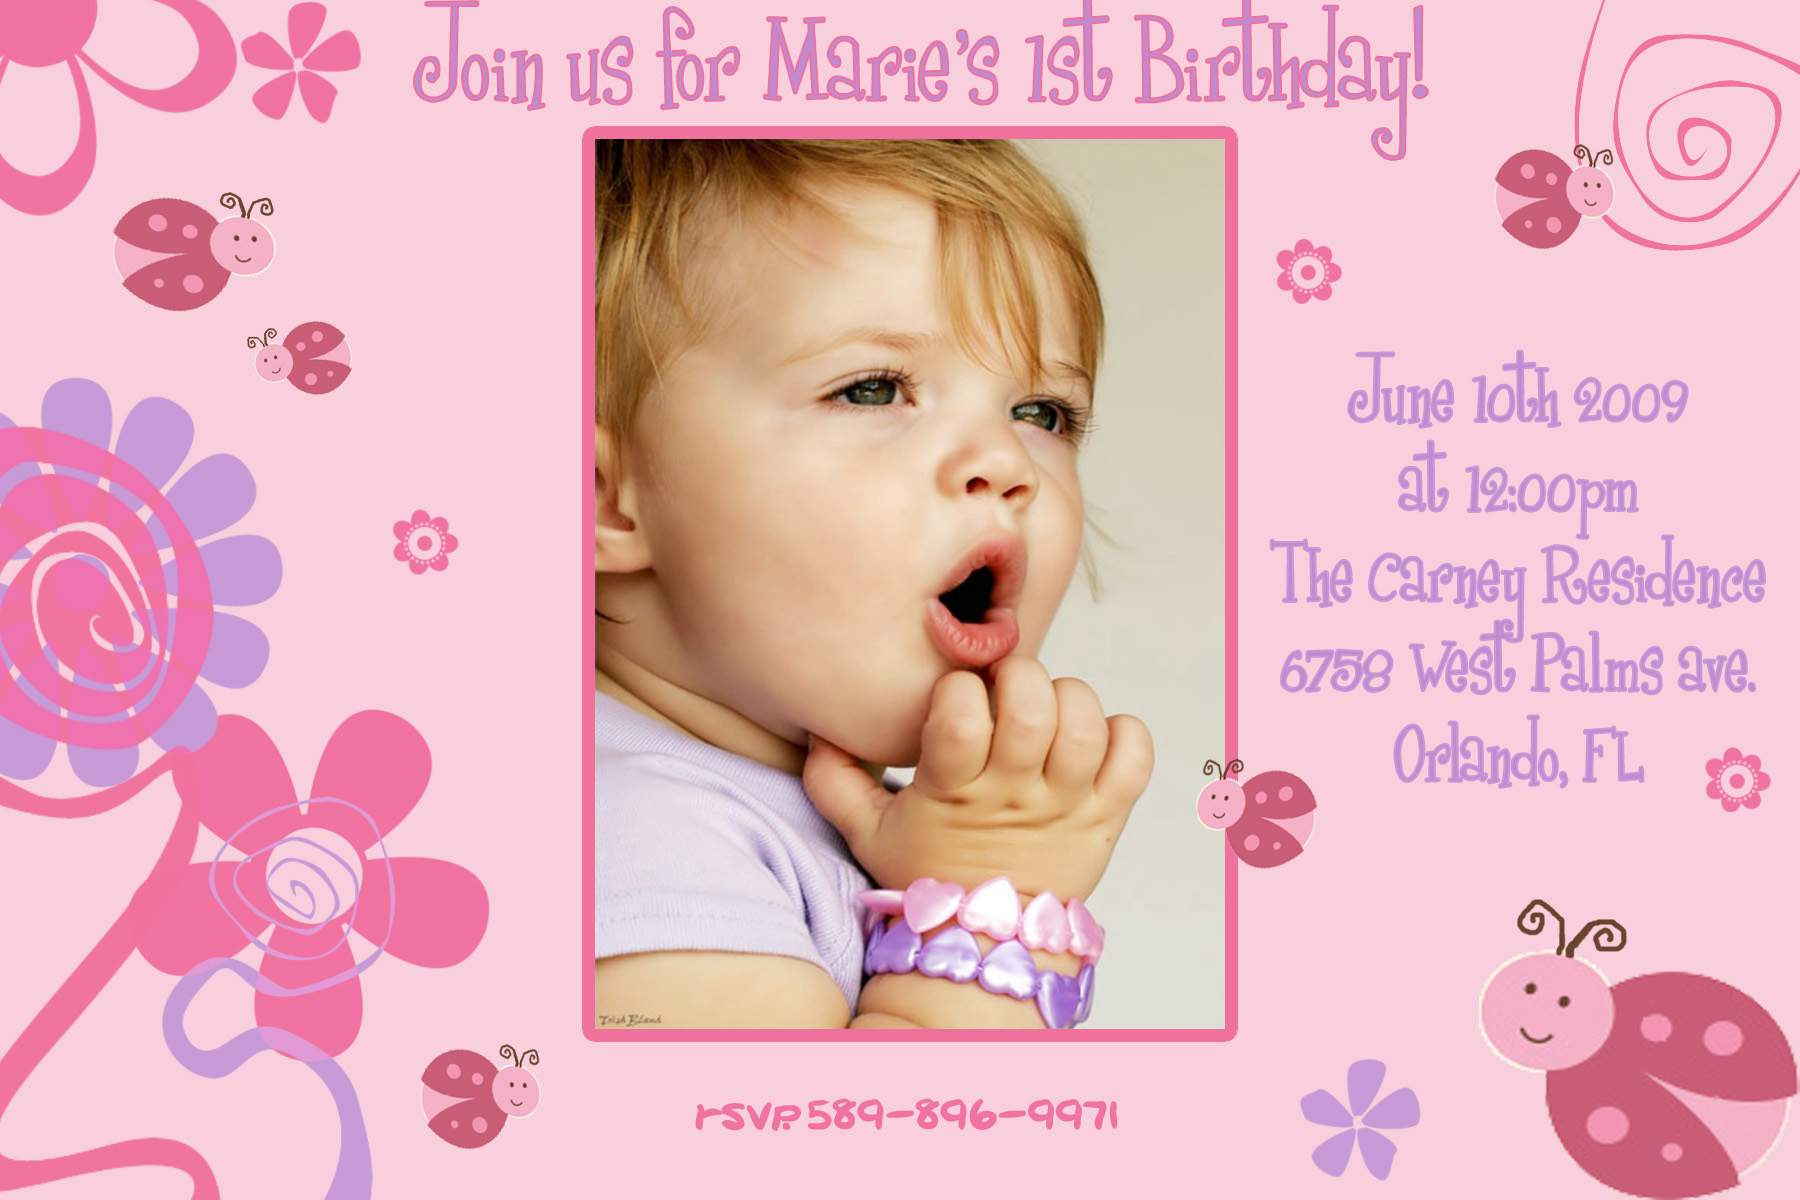 birthday invitation card design template free download ; Birthday-Invitation-Templates-Free-Download-to-inspire-you-how-to-create-the-birthday-Invitation-with-the-best-way-3